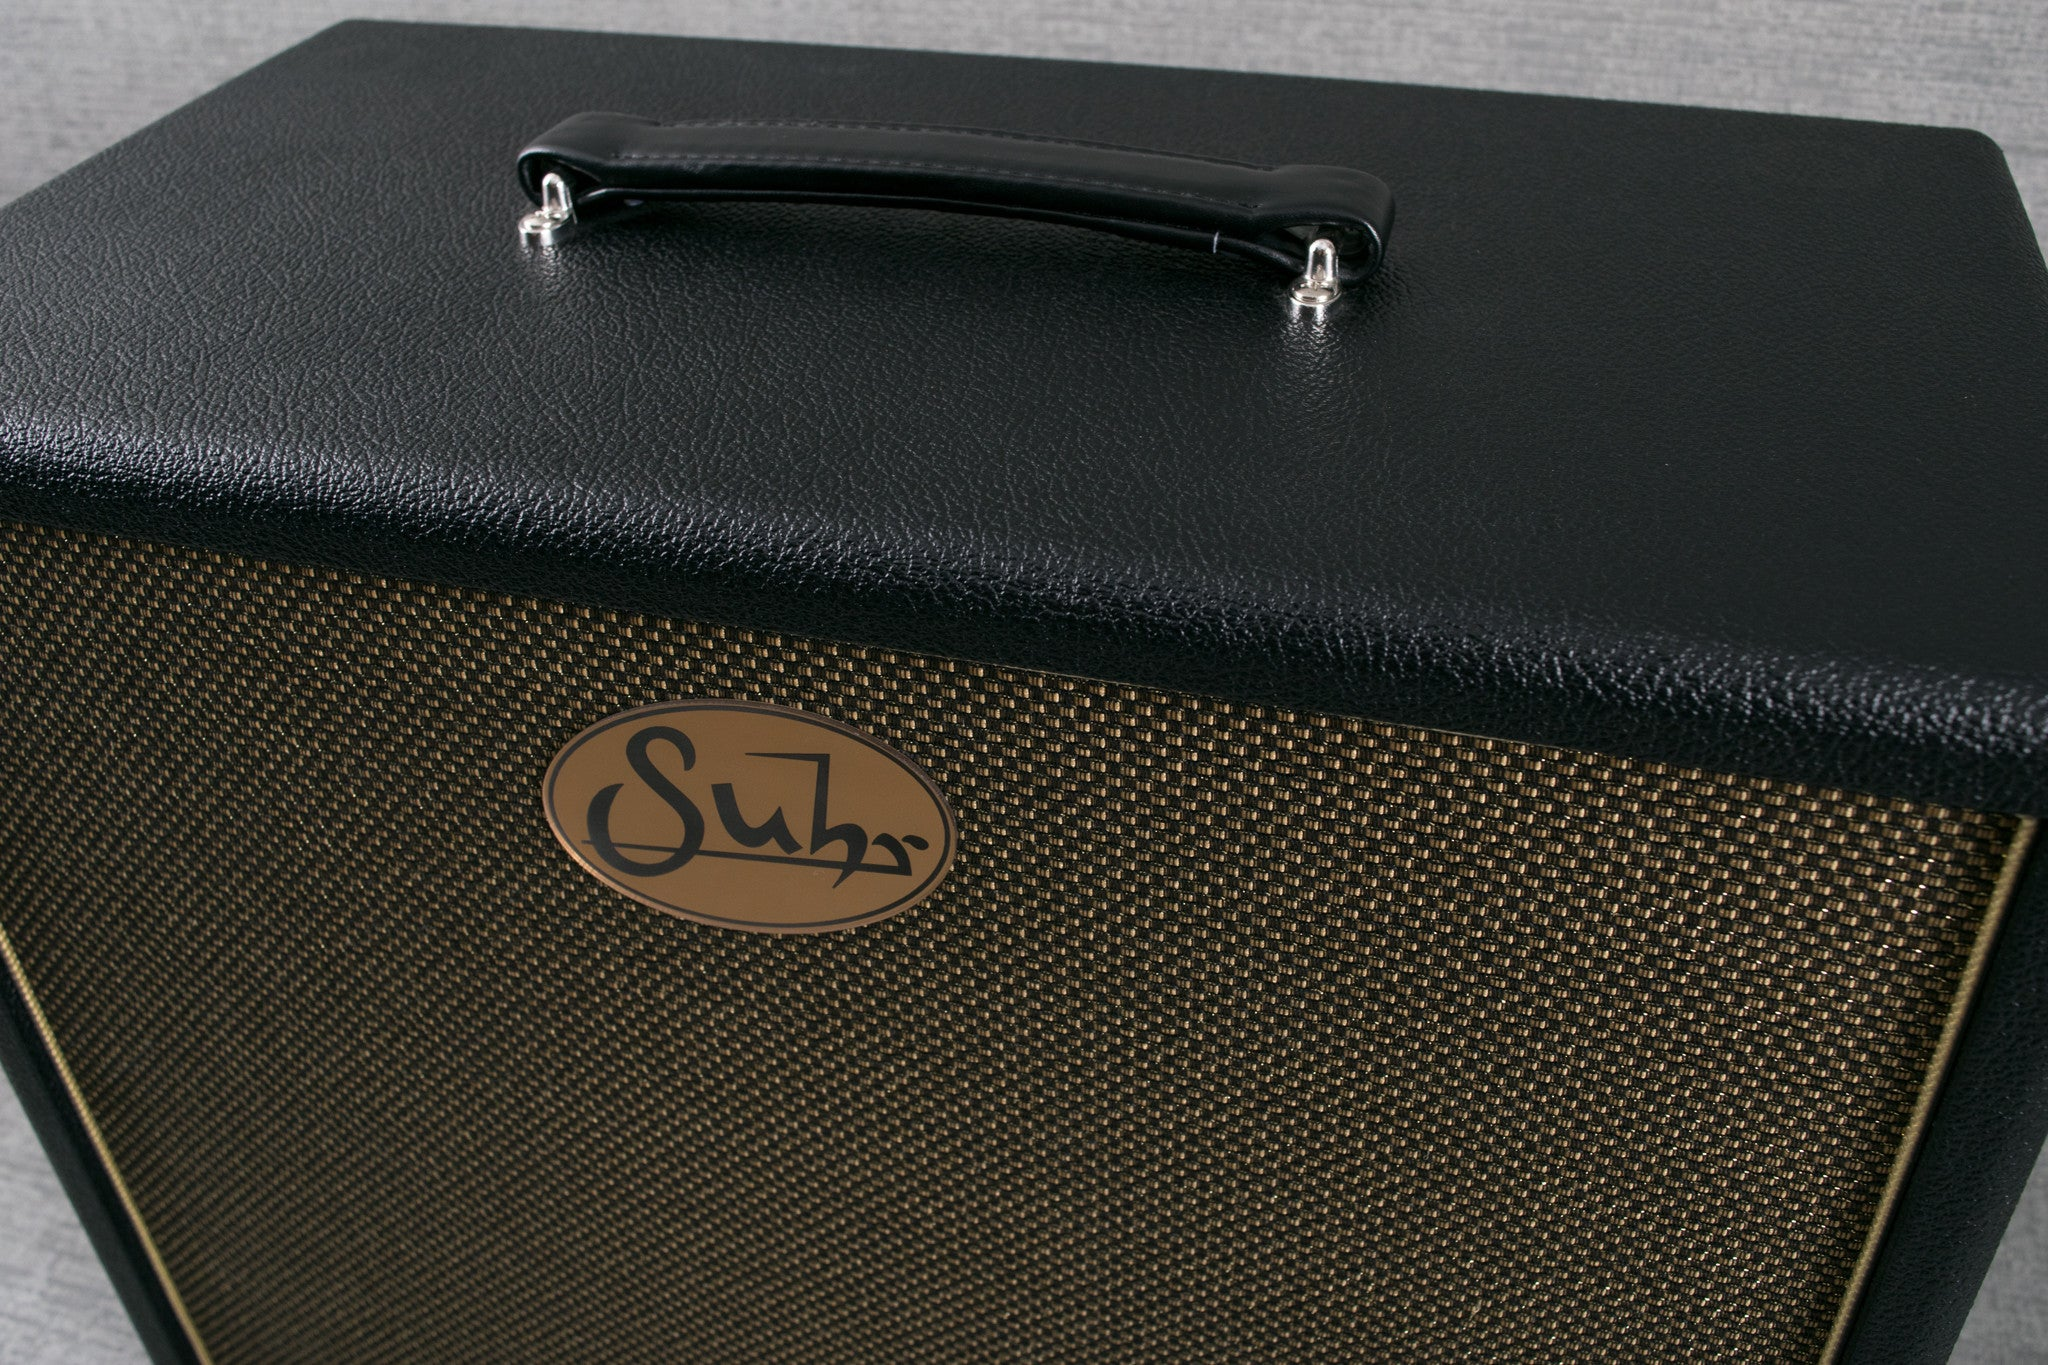 Used Suhr Badger 1x12 Cabinet